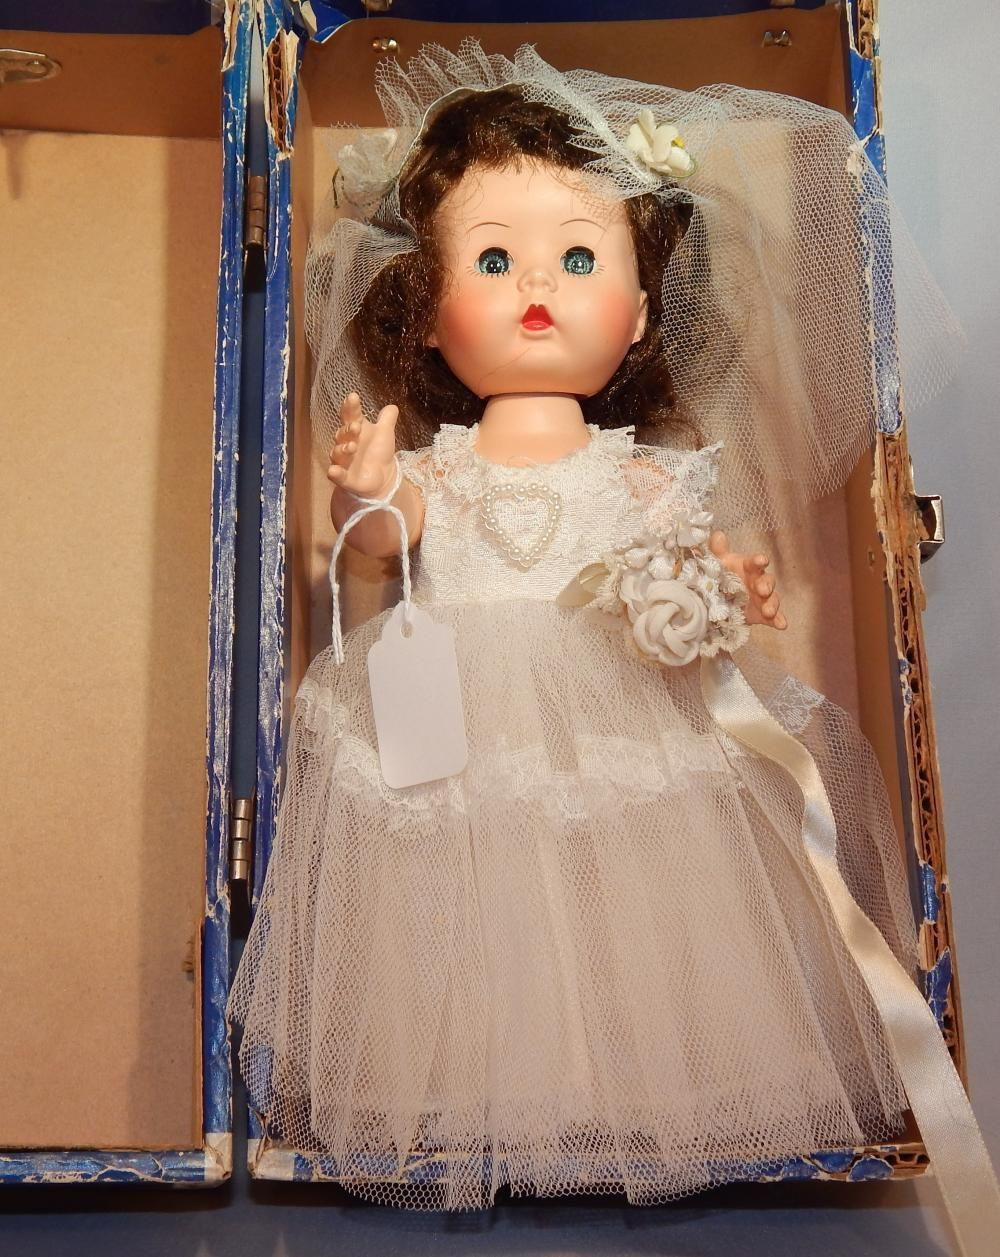 R B Arranbee Littlest Angel Vogue Bride Doll w Case eBay